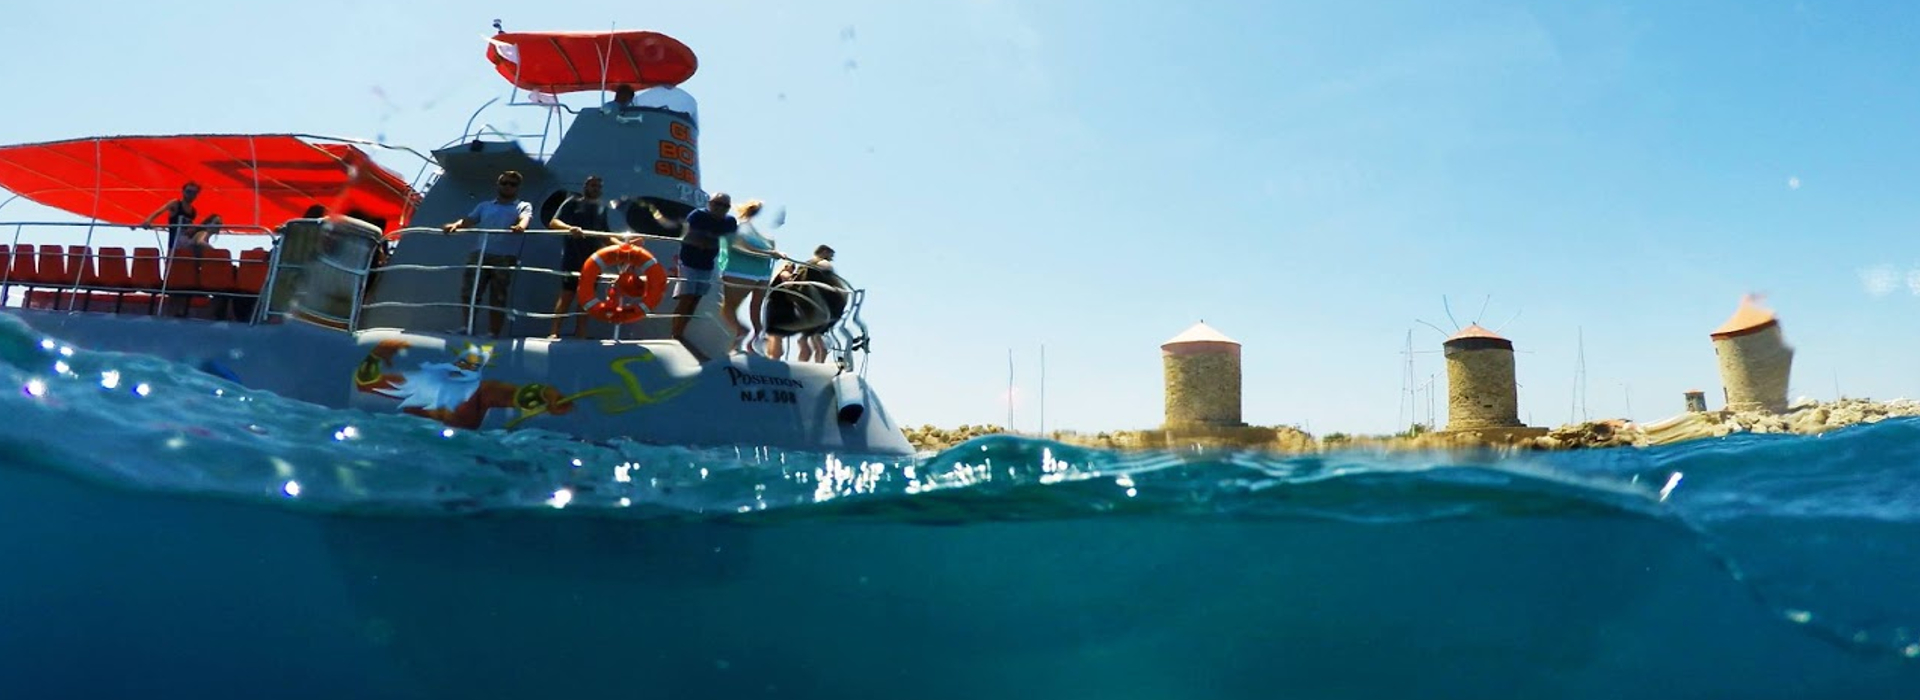 Poseidon Submarine | Captains Tours